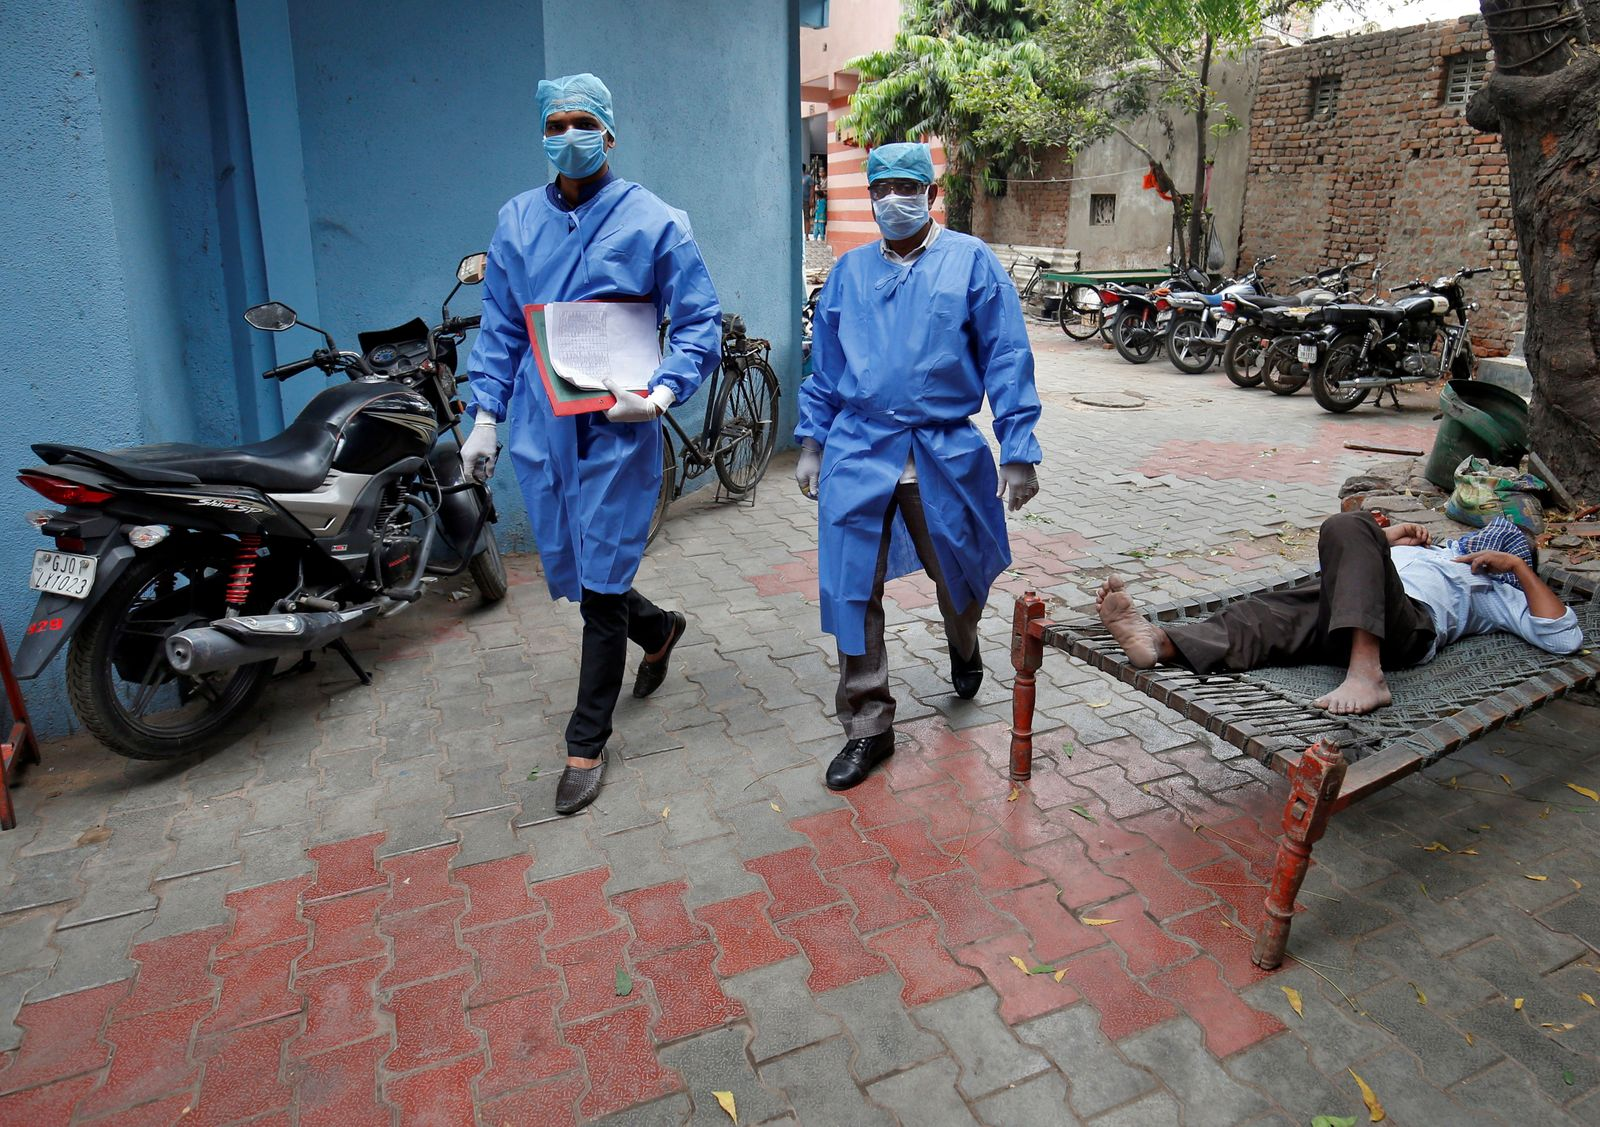 Police officers in protective suits arrive in a residential area to check on people under home quarantine in Ahmedabad